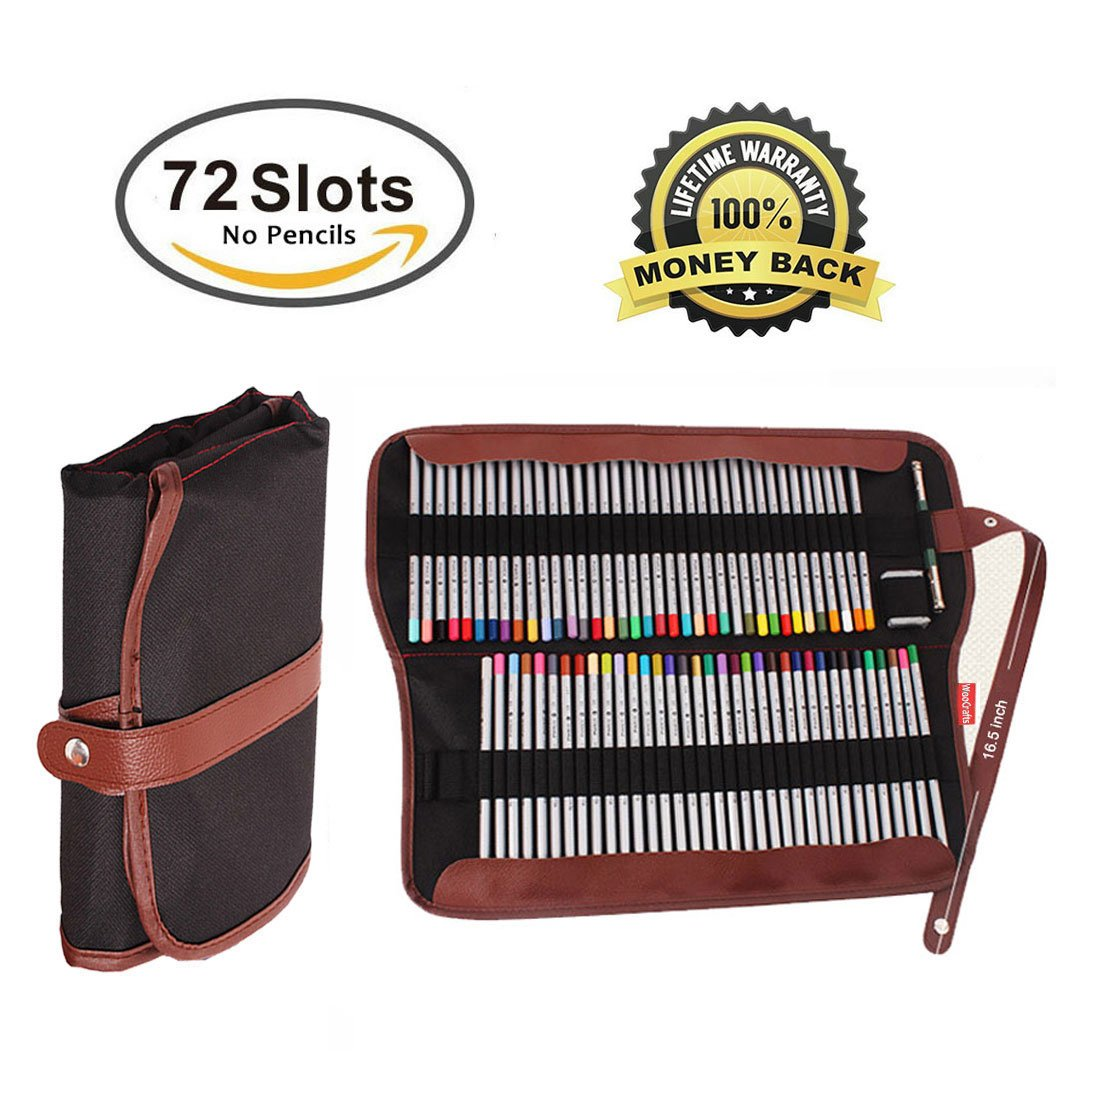 32acfeaf7e76 Top 10 Best Pencil Case Holders - Lists and Reviews 2019-2020 on ...